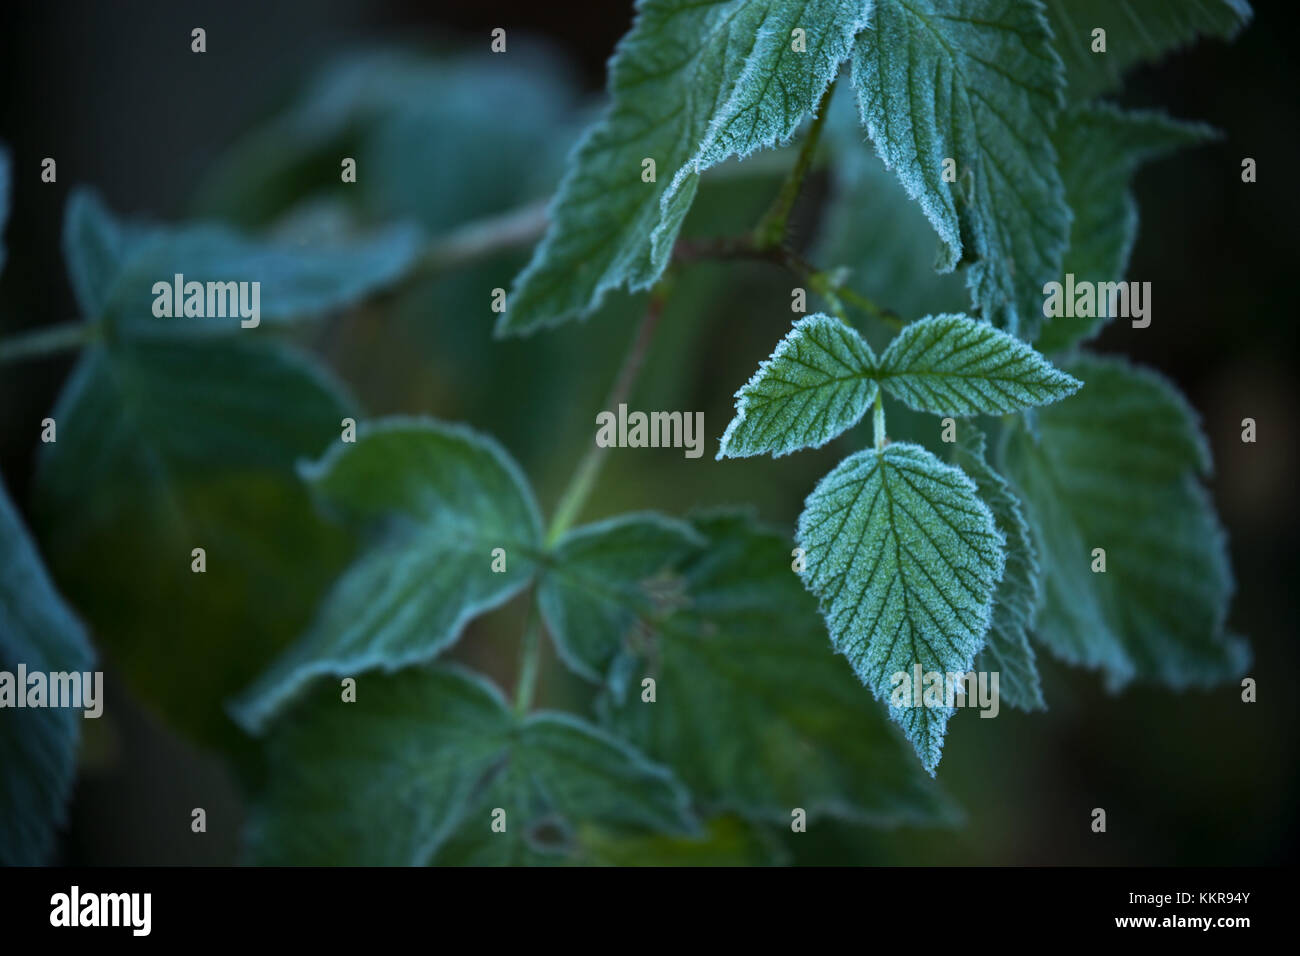 Closeup of frozen green leaves, blurred background - Stock Image